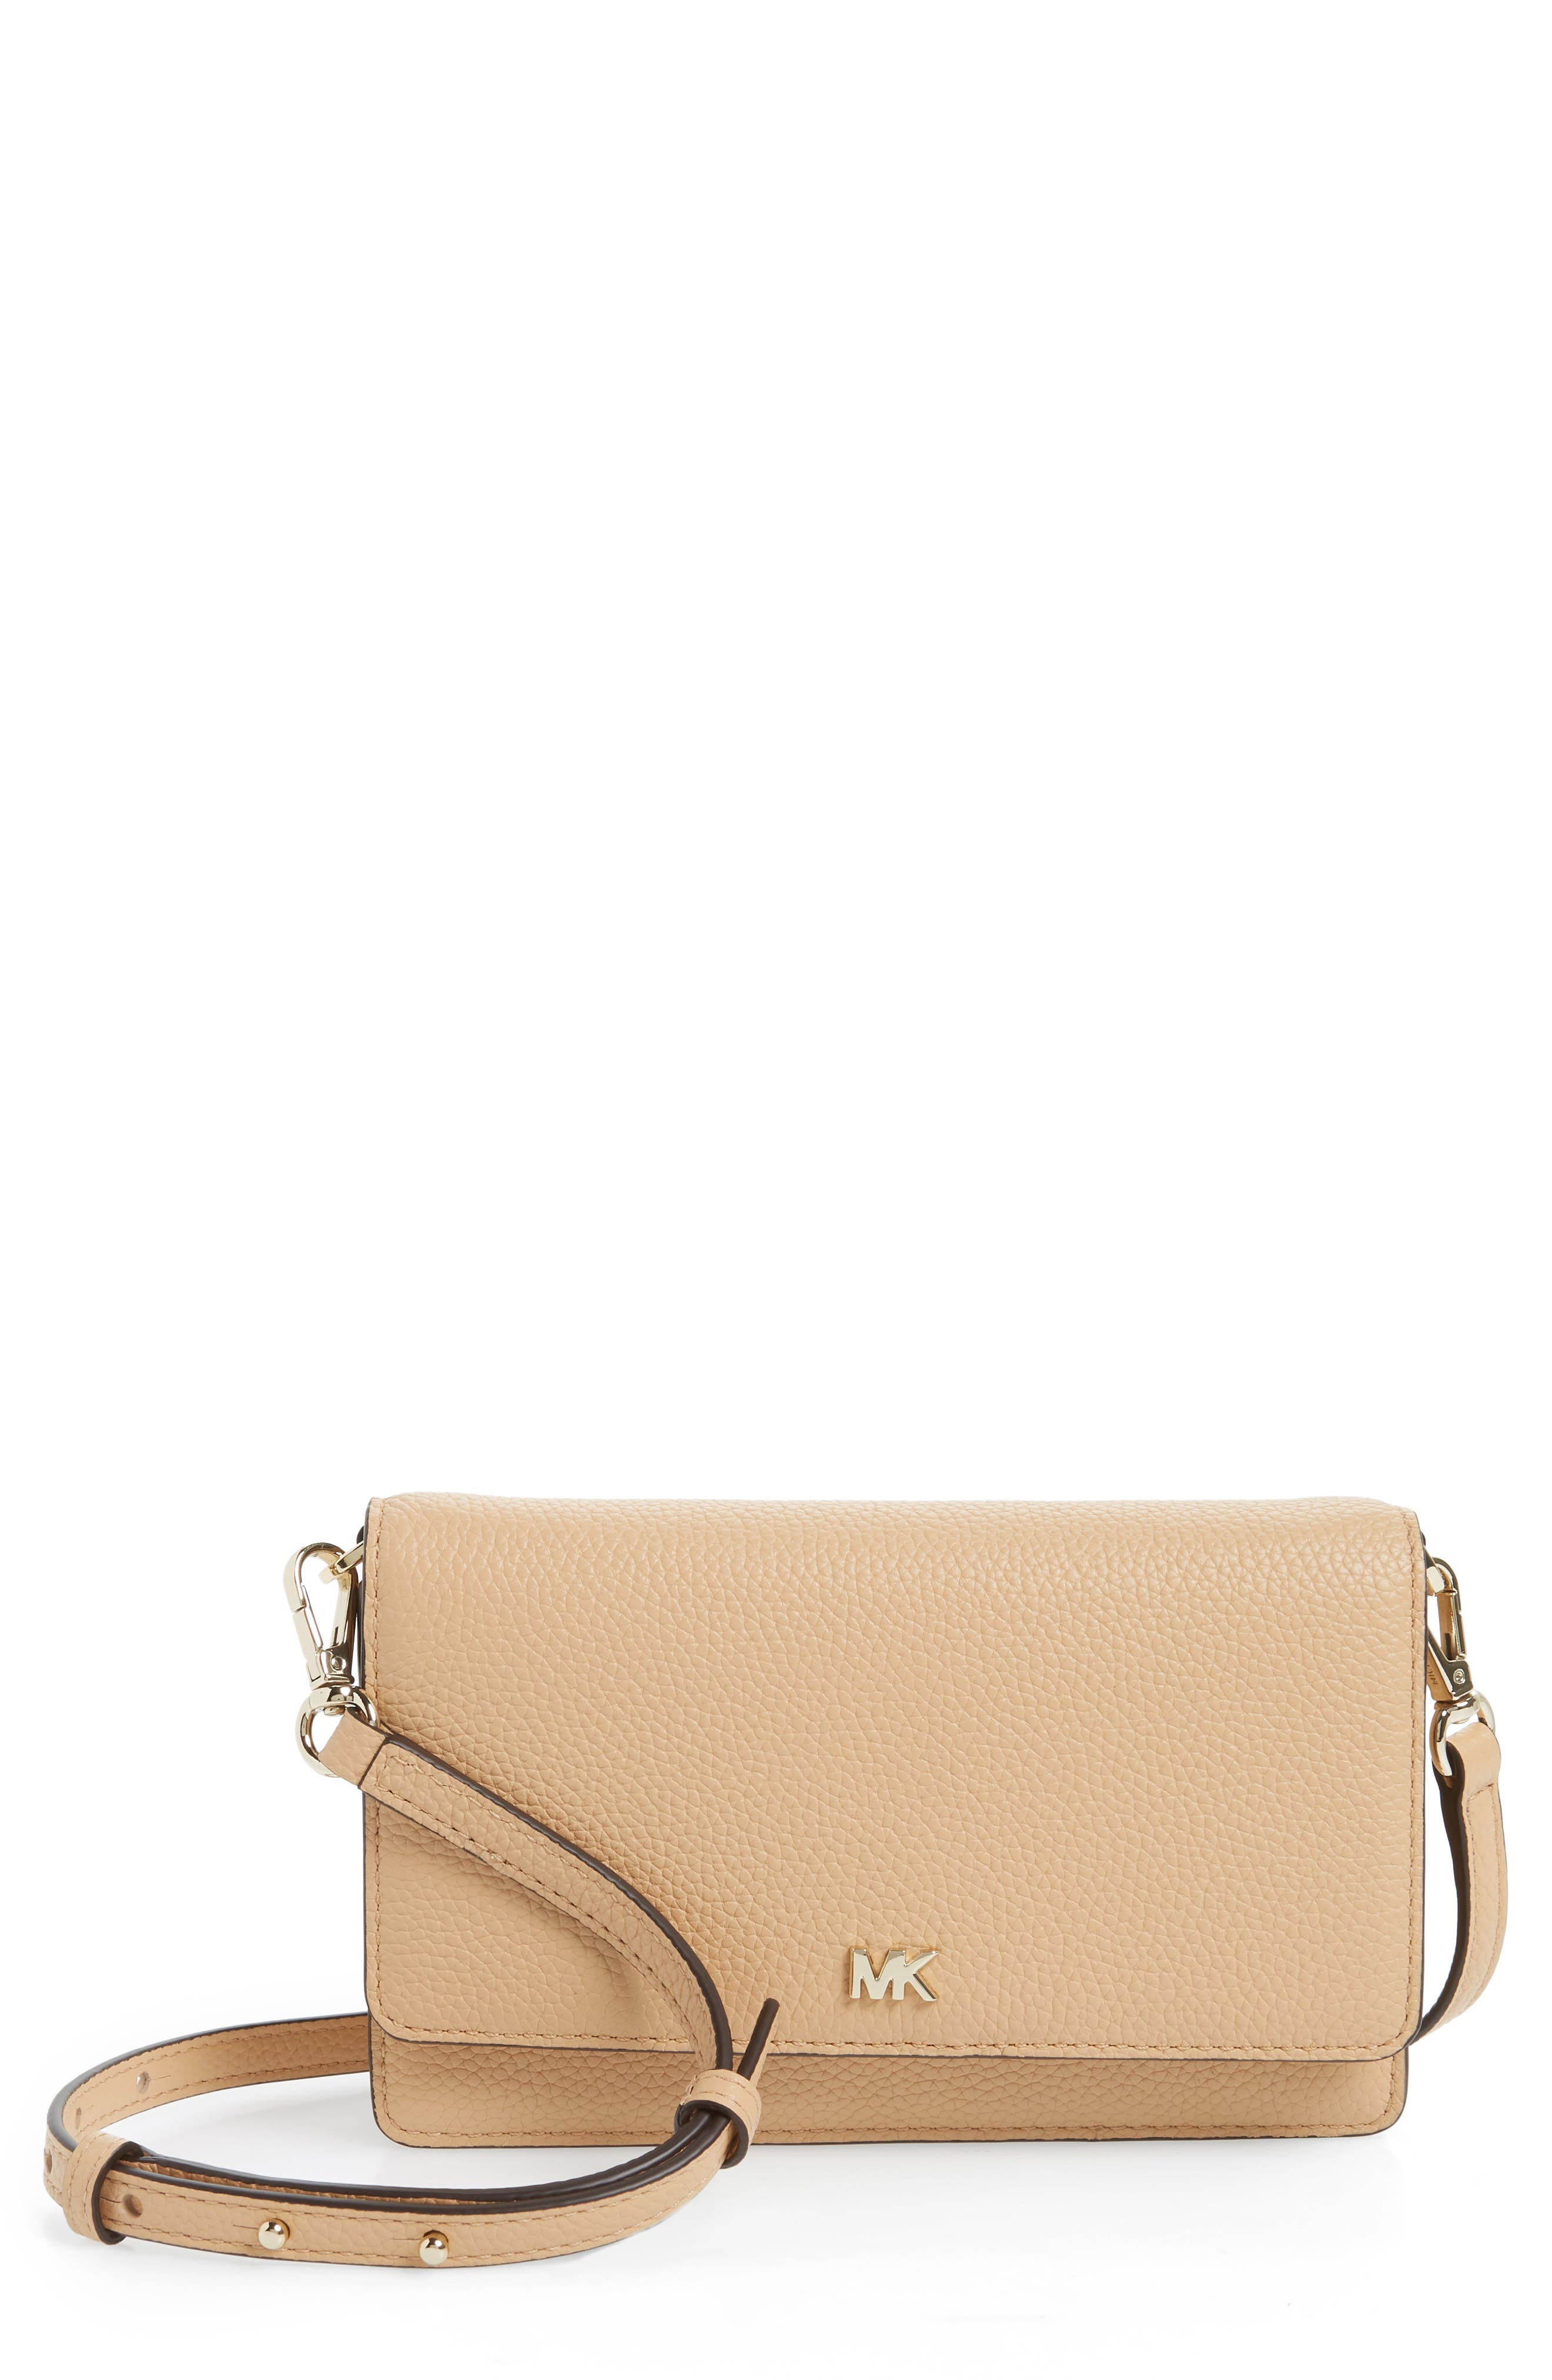 Leather Crossbody Phone Wallet,                         Main,                         color, 250